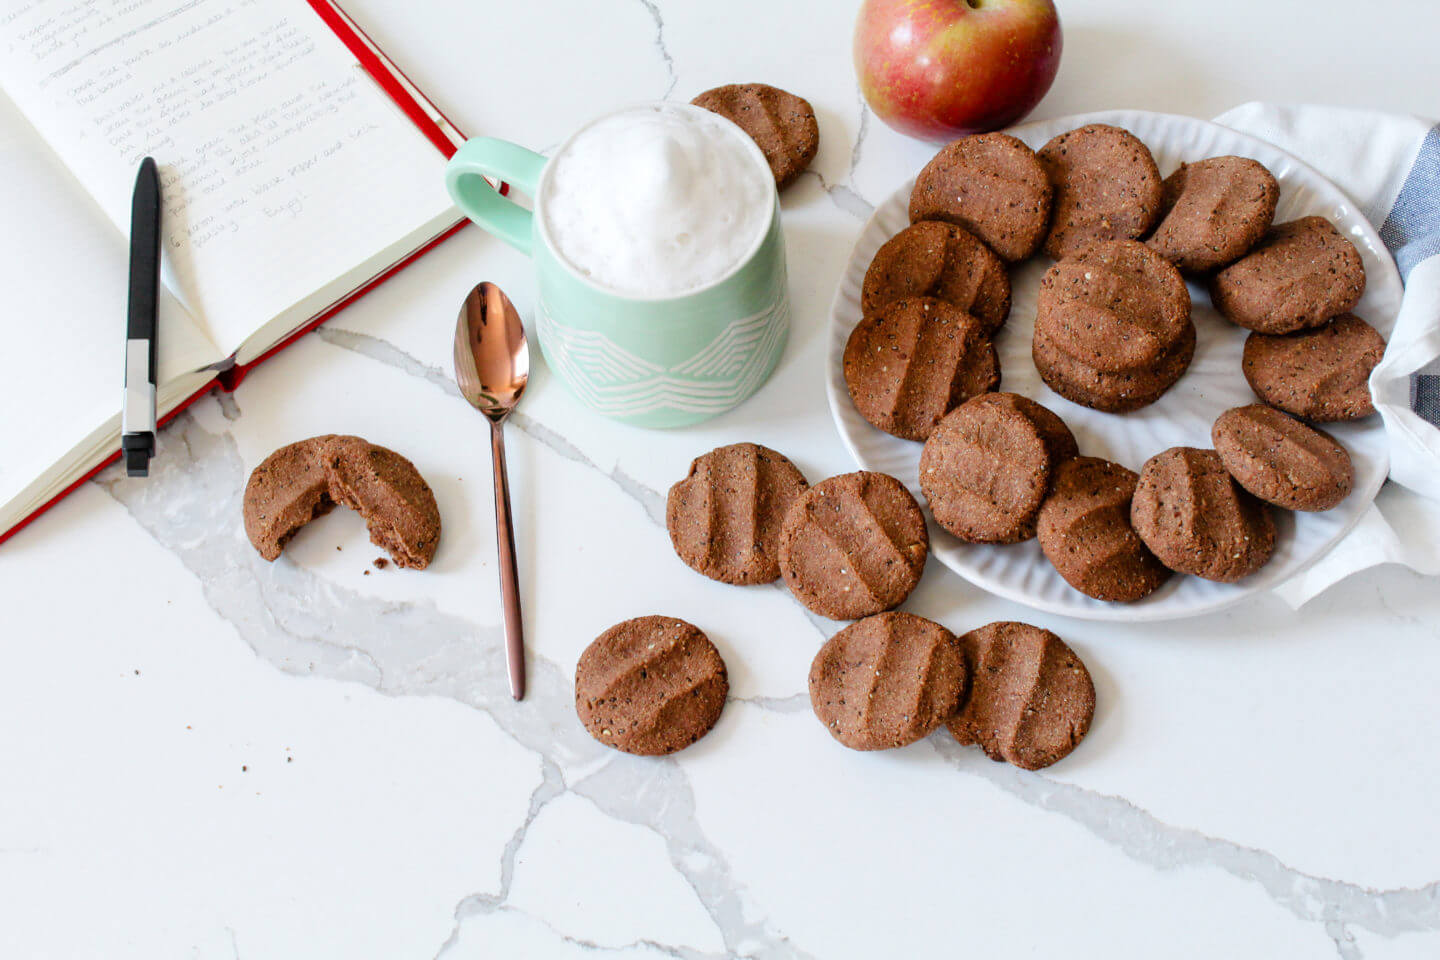 Sustainable and Healthy Lifestyle influencer shares her secret energetic cookies recipe!!